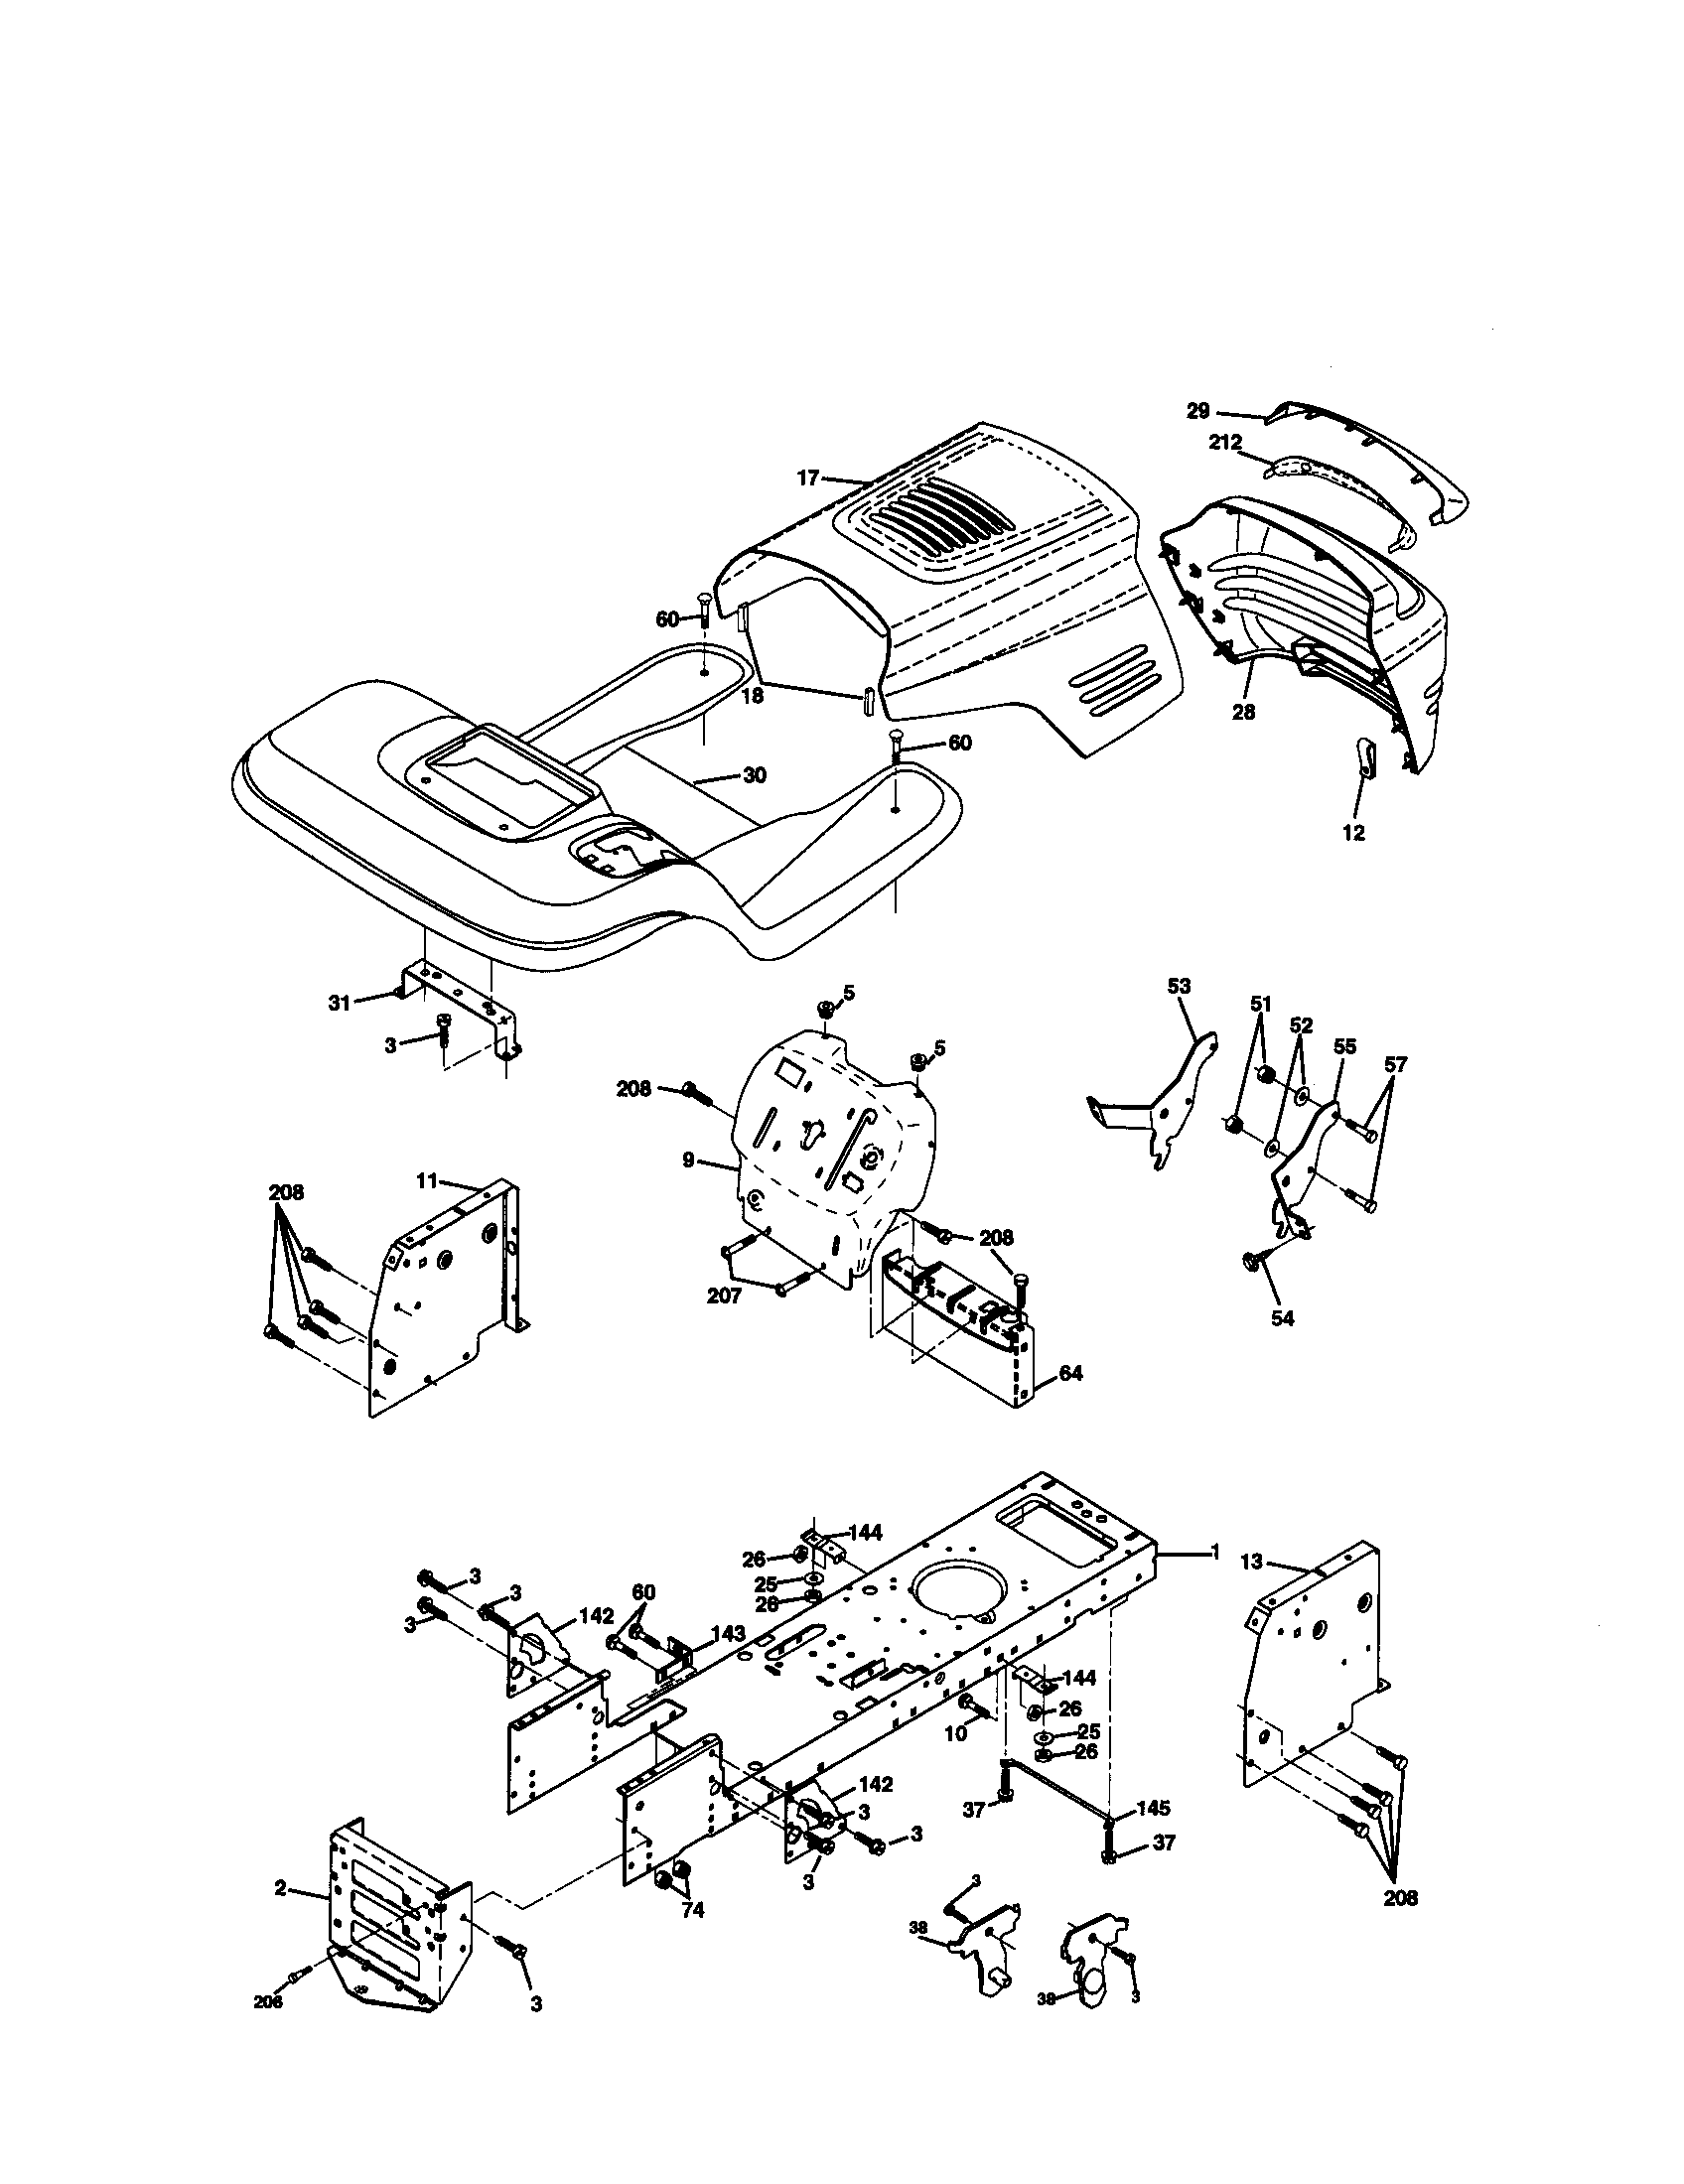 hight resolution of craftsman 917270671 chassis and enclosures diagram